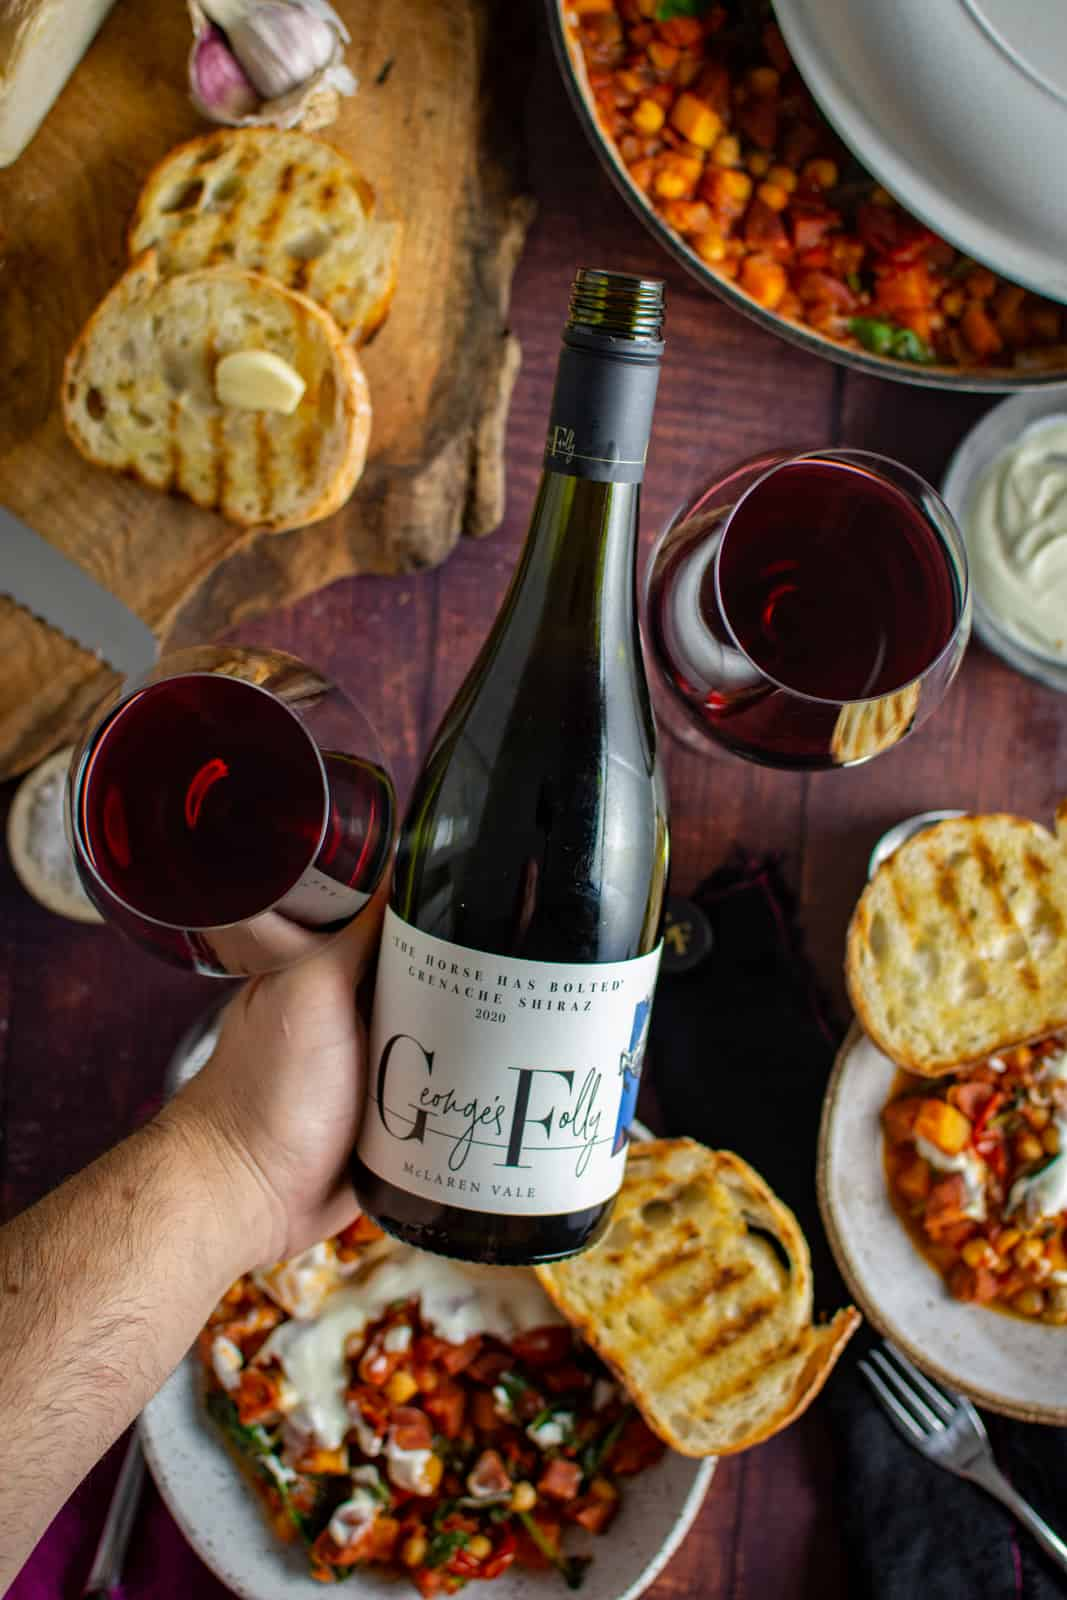 someone holding georges folly wine with food on table in background